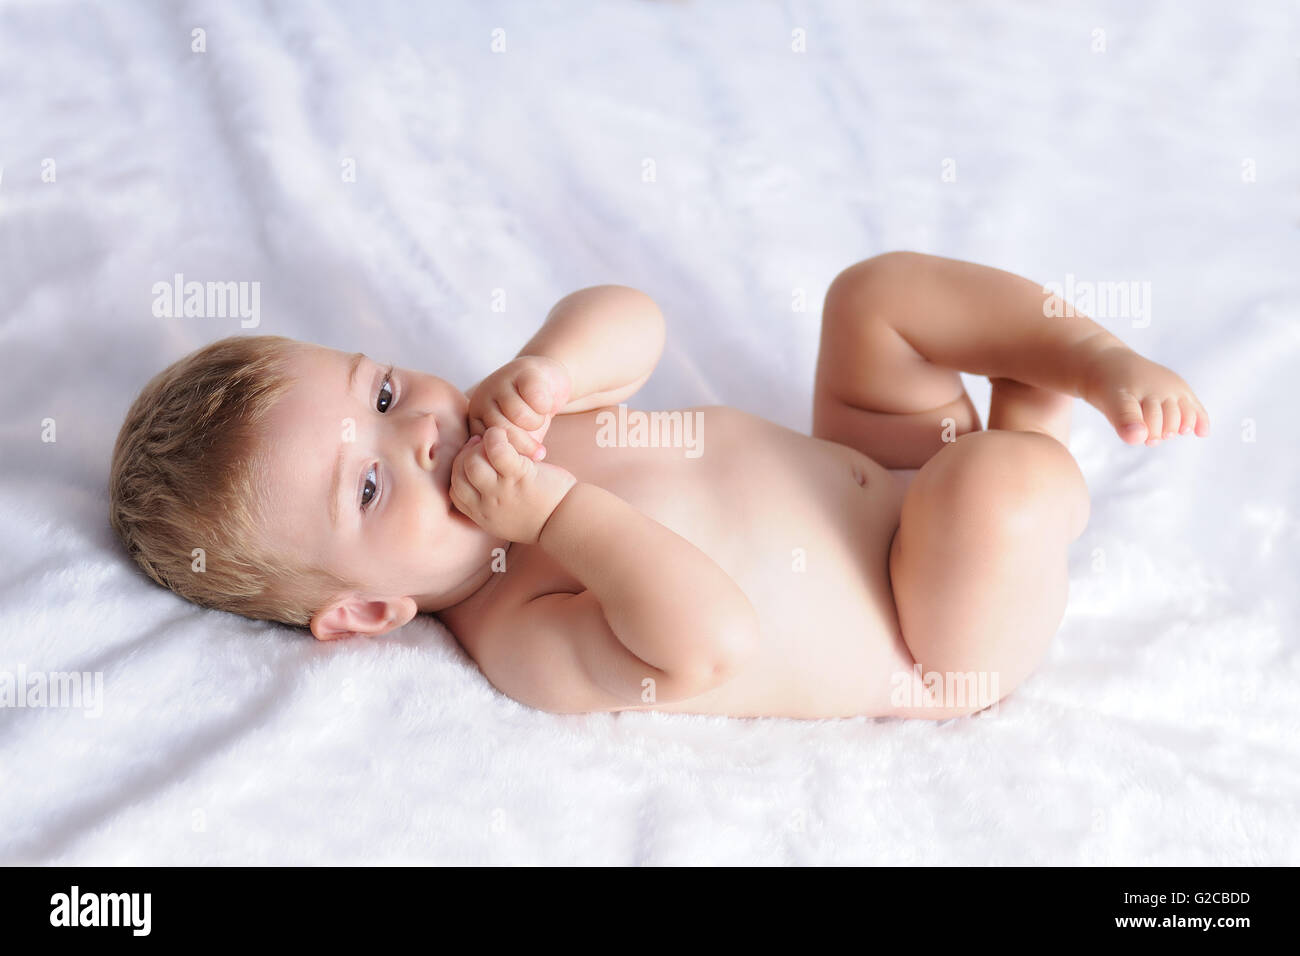 baby biting hands lying on a blanket of white hair - Stock Image